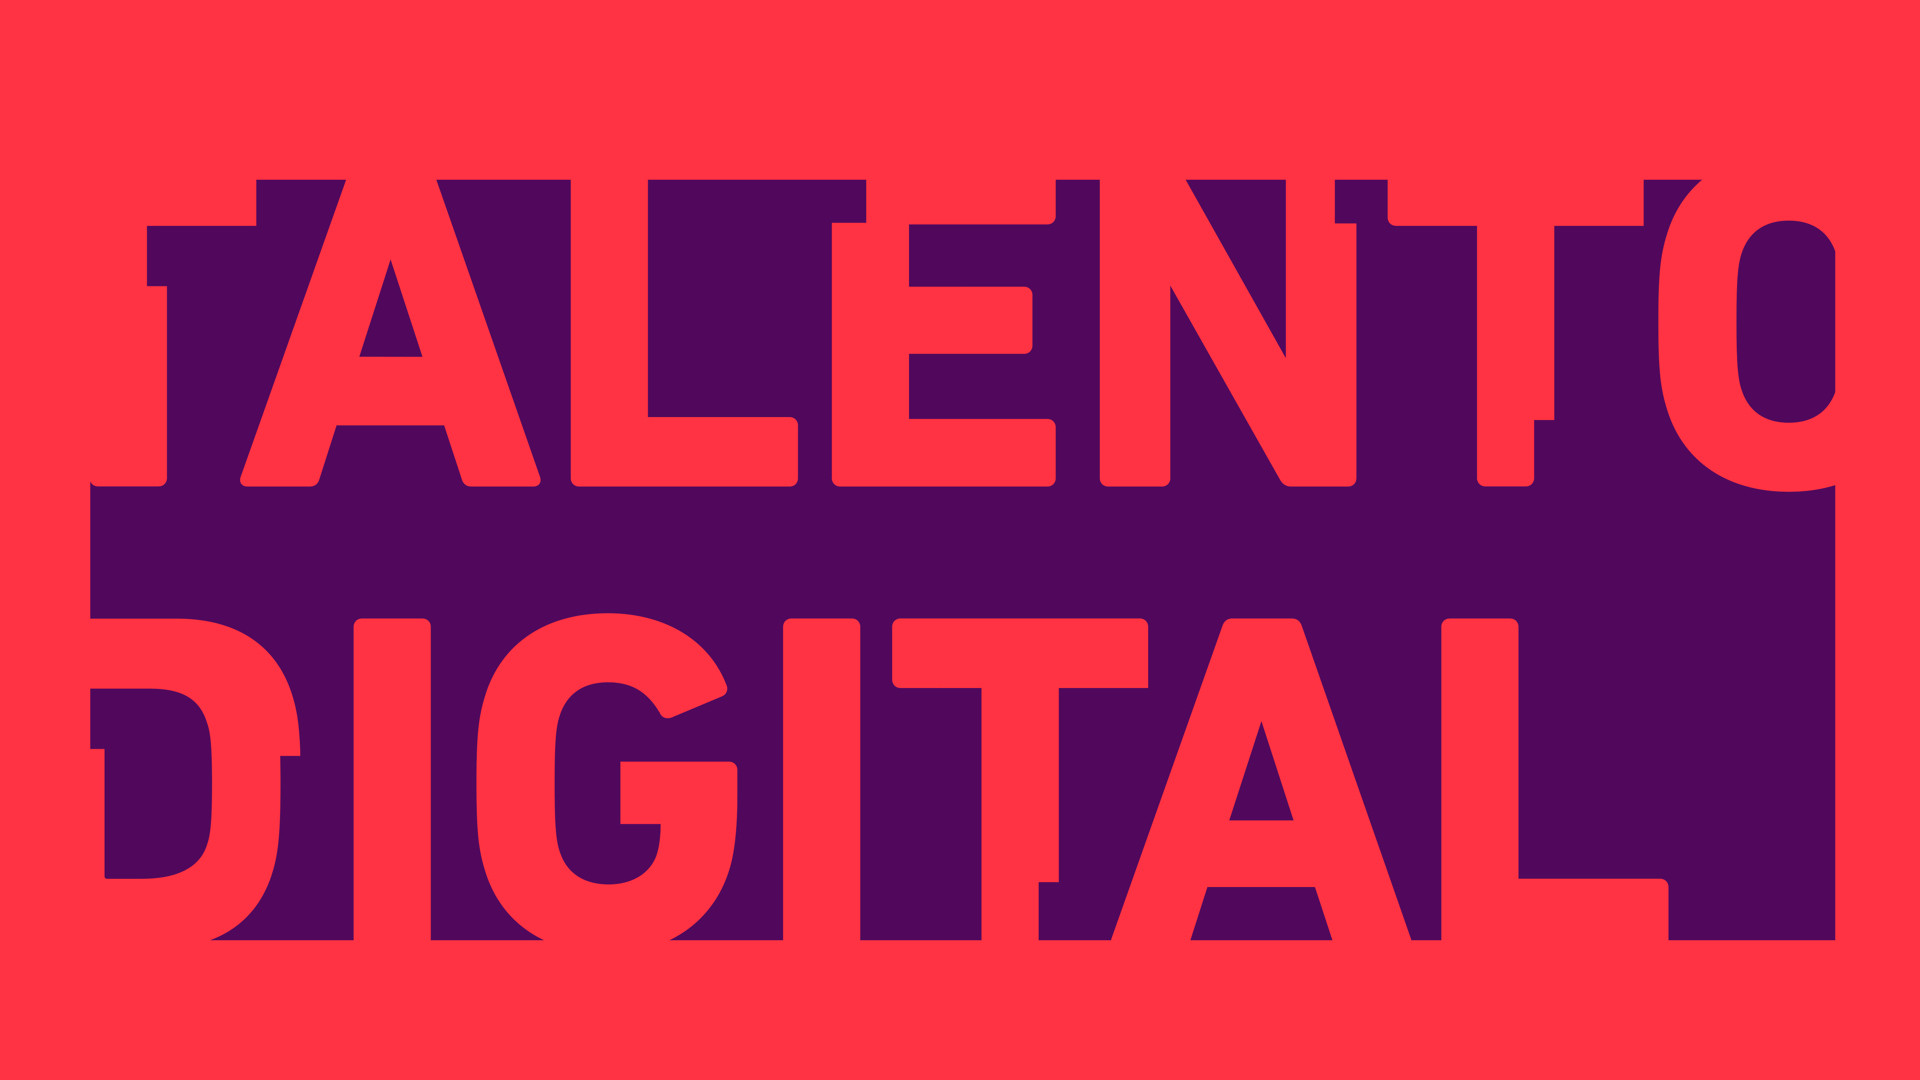 TALENTO DIGITAL.002.jpeg